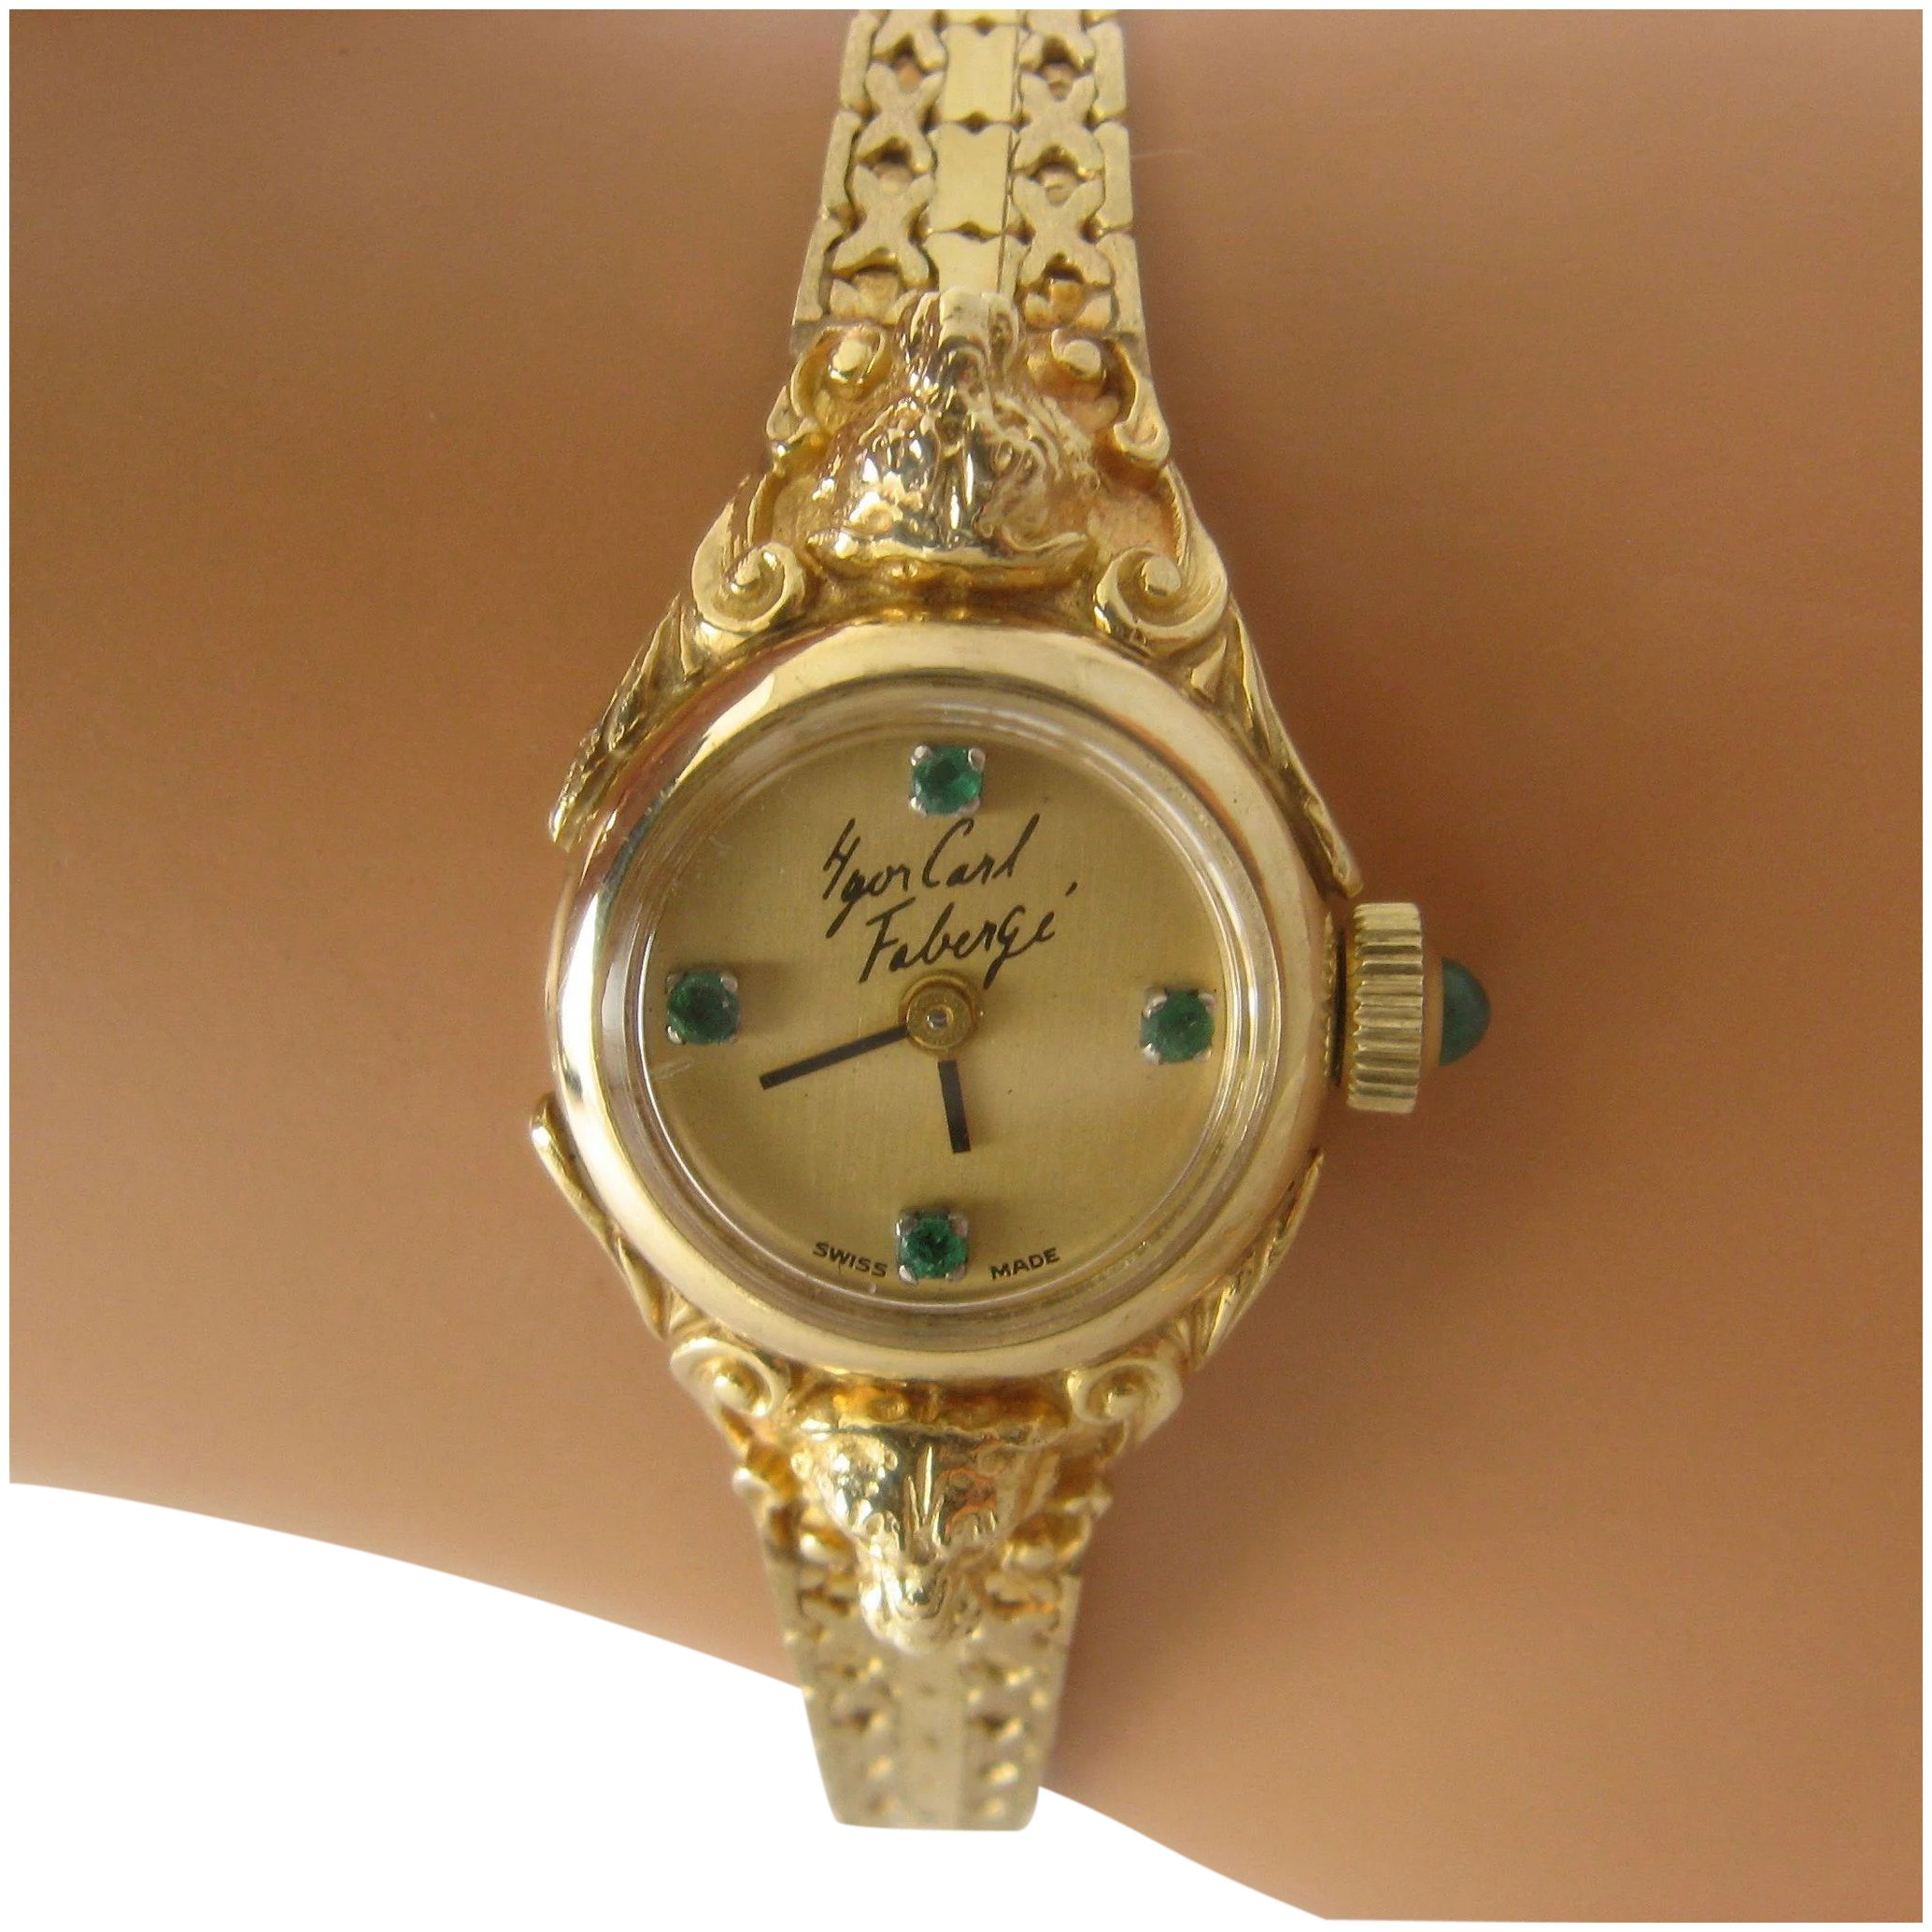 products watches sold deleuse watch piaget diamond vintage fine img ladies gold emerald